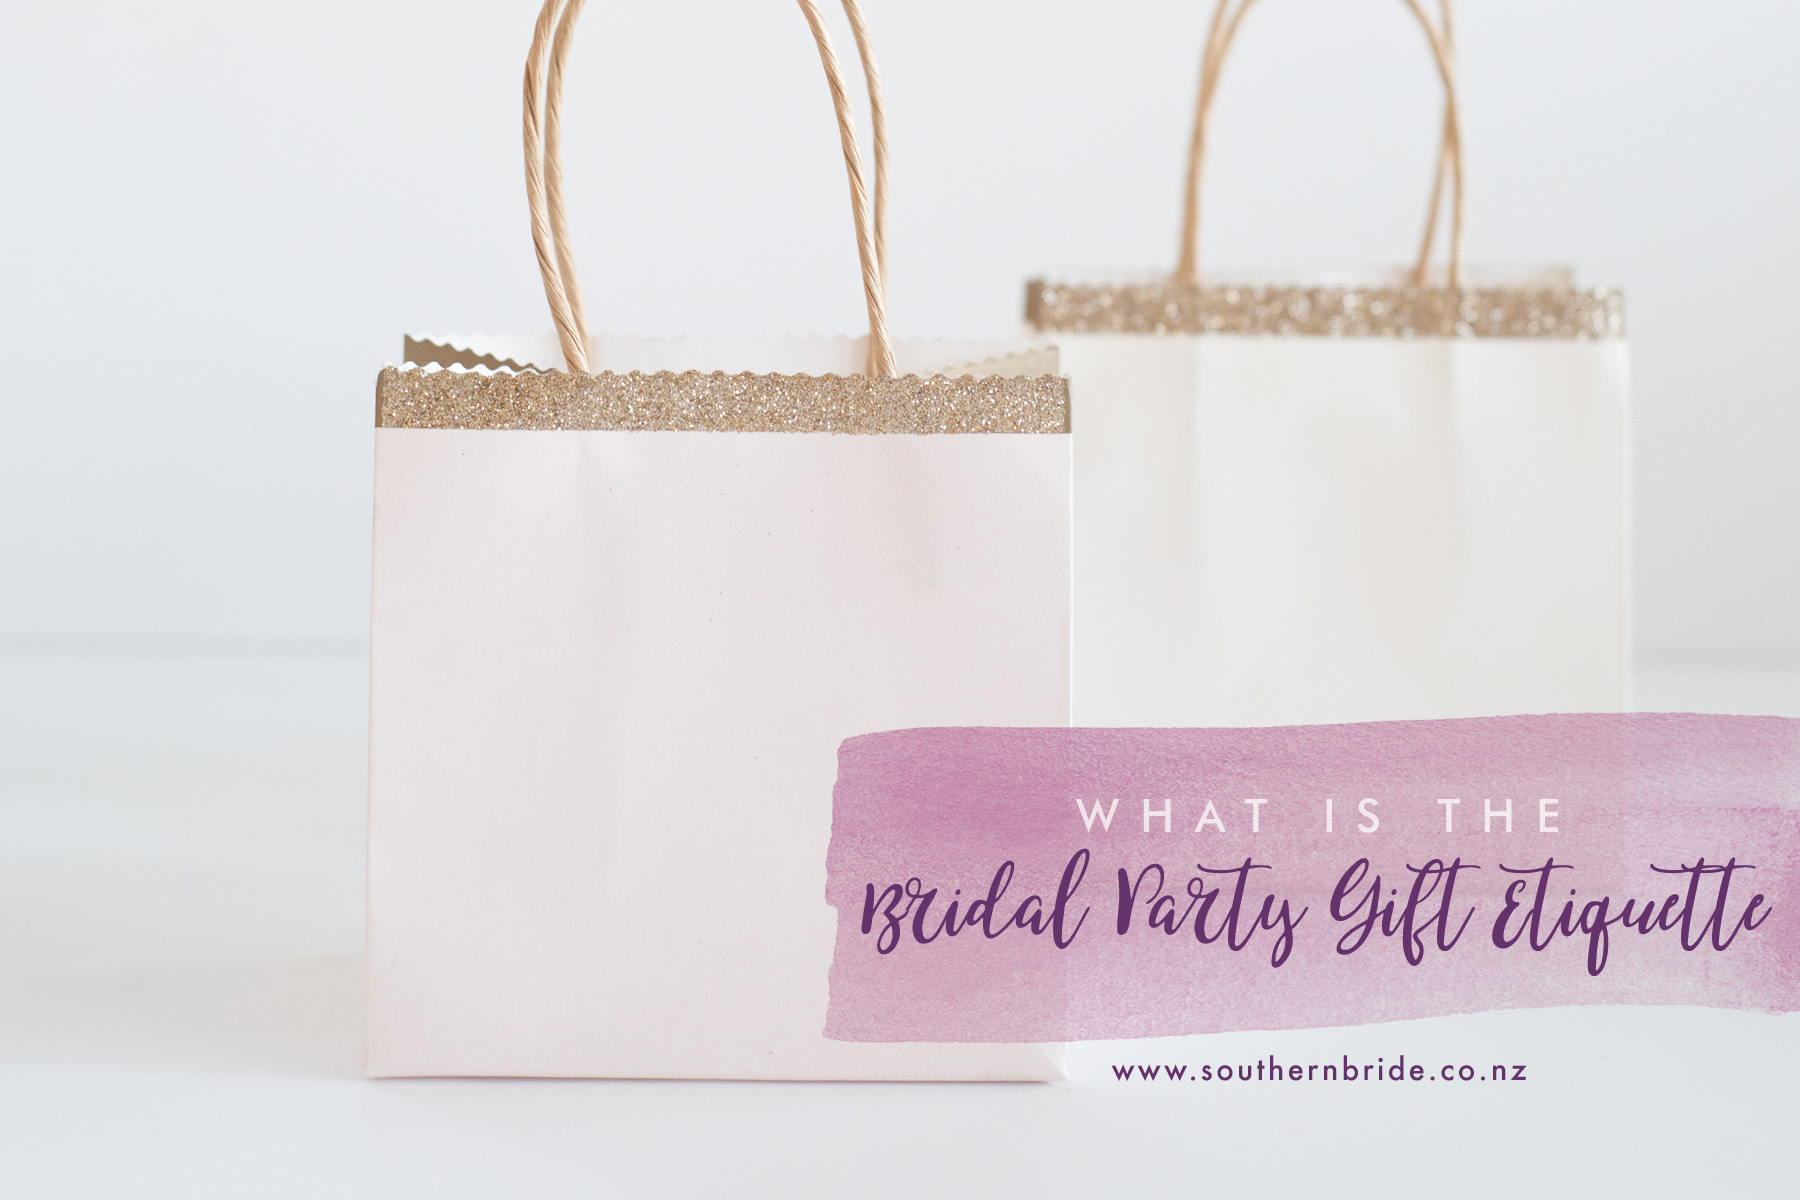 Wedding Party Gift Etiquette: Is There A Bridal Party Gift Etiquette?